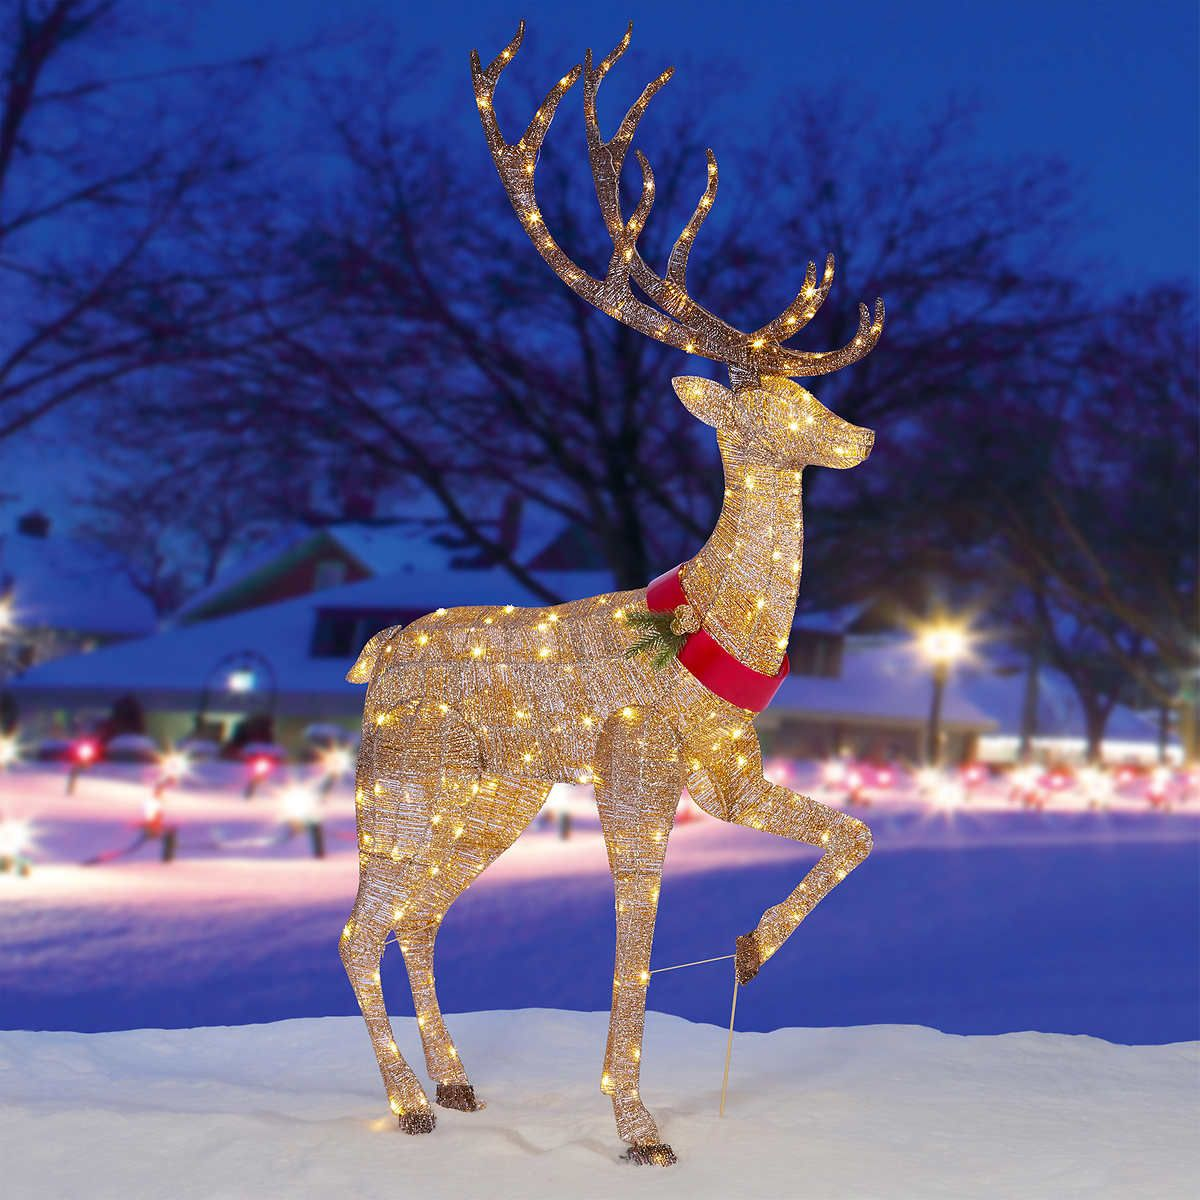 pin by ingalls01 on christmas decorations outdoor christmas rh pinterest com